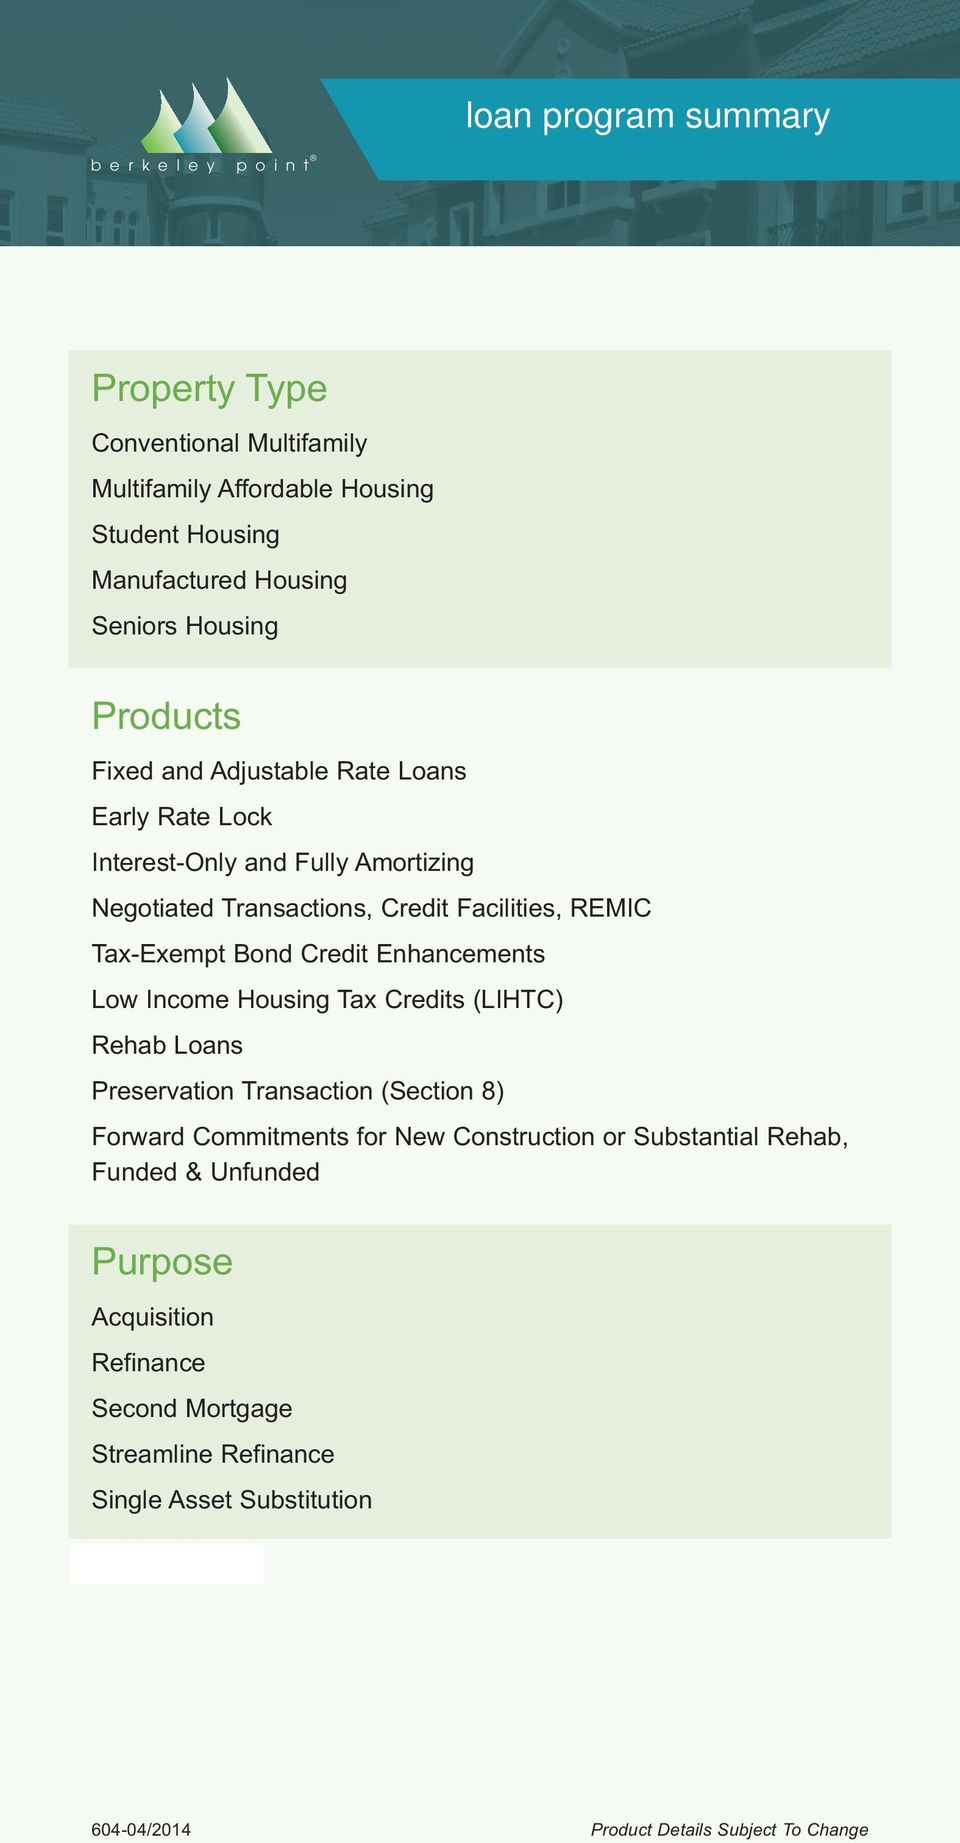 Income Housing Tax Credits (LIHTC) Rehab Loans Preservation Transaction (Section 8) Forward Commitments for New Construction or Substantial Rehab, Funded &